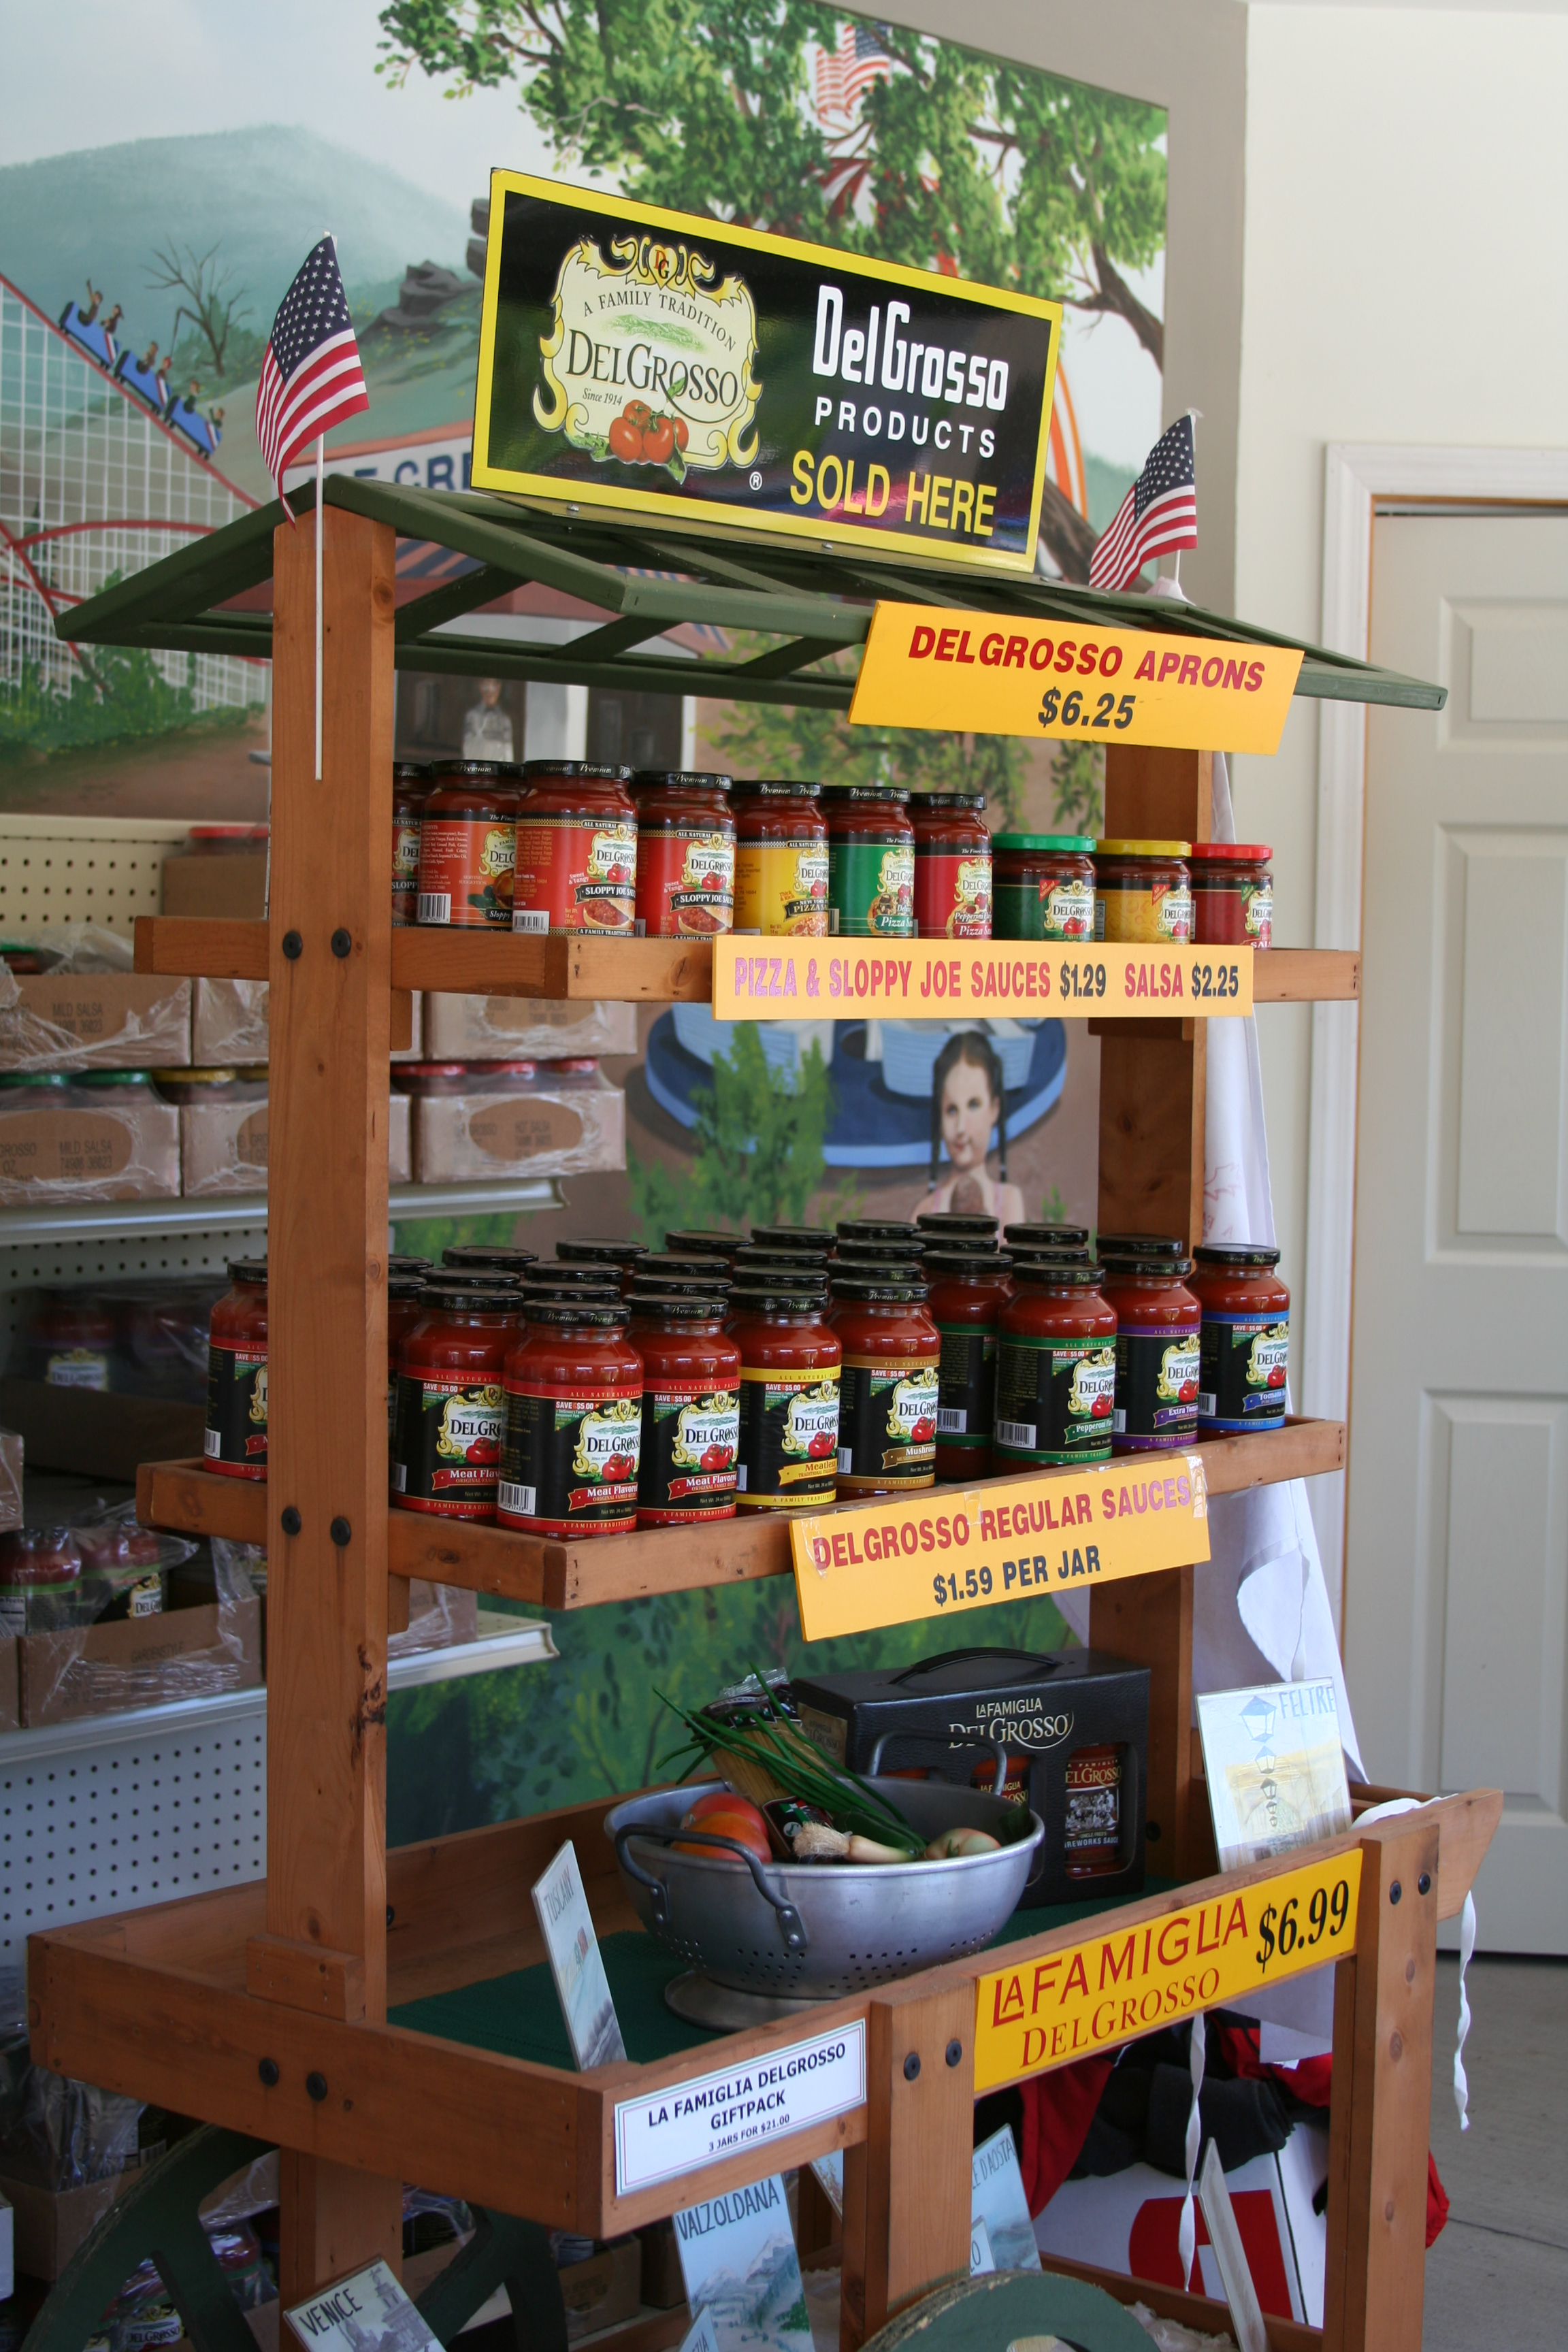 Gallery of DelGrosso's sauces